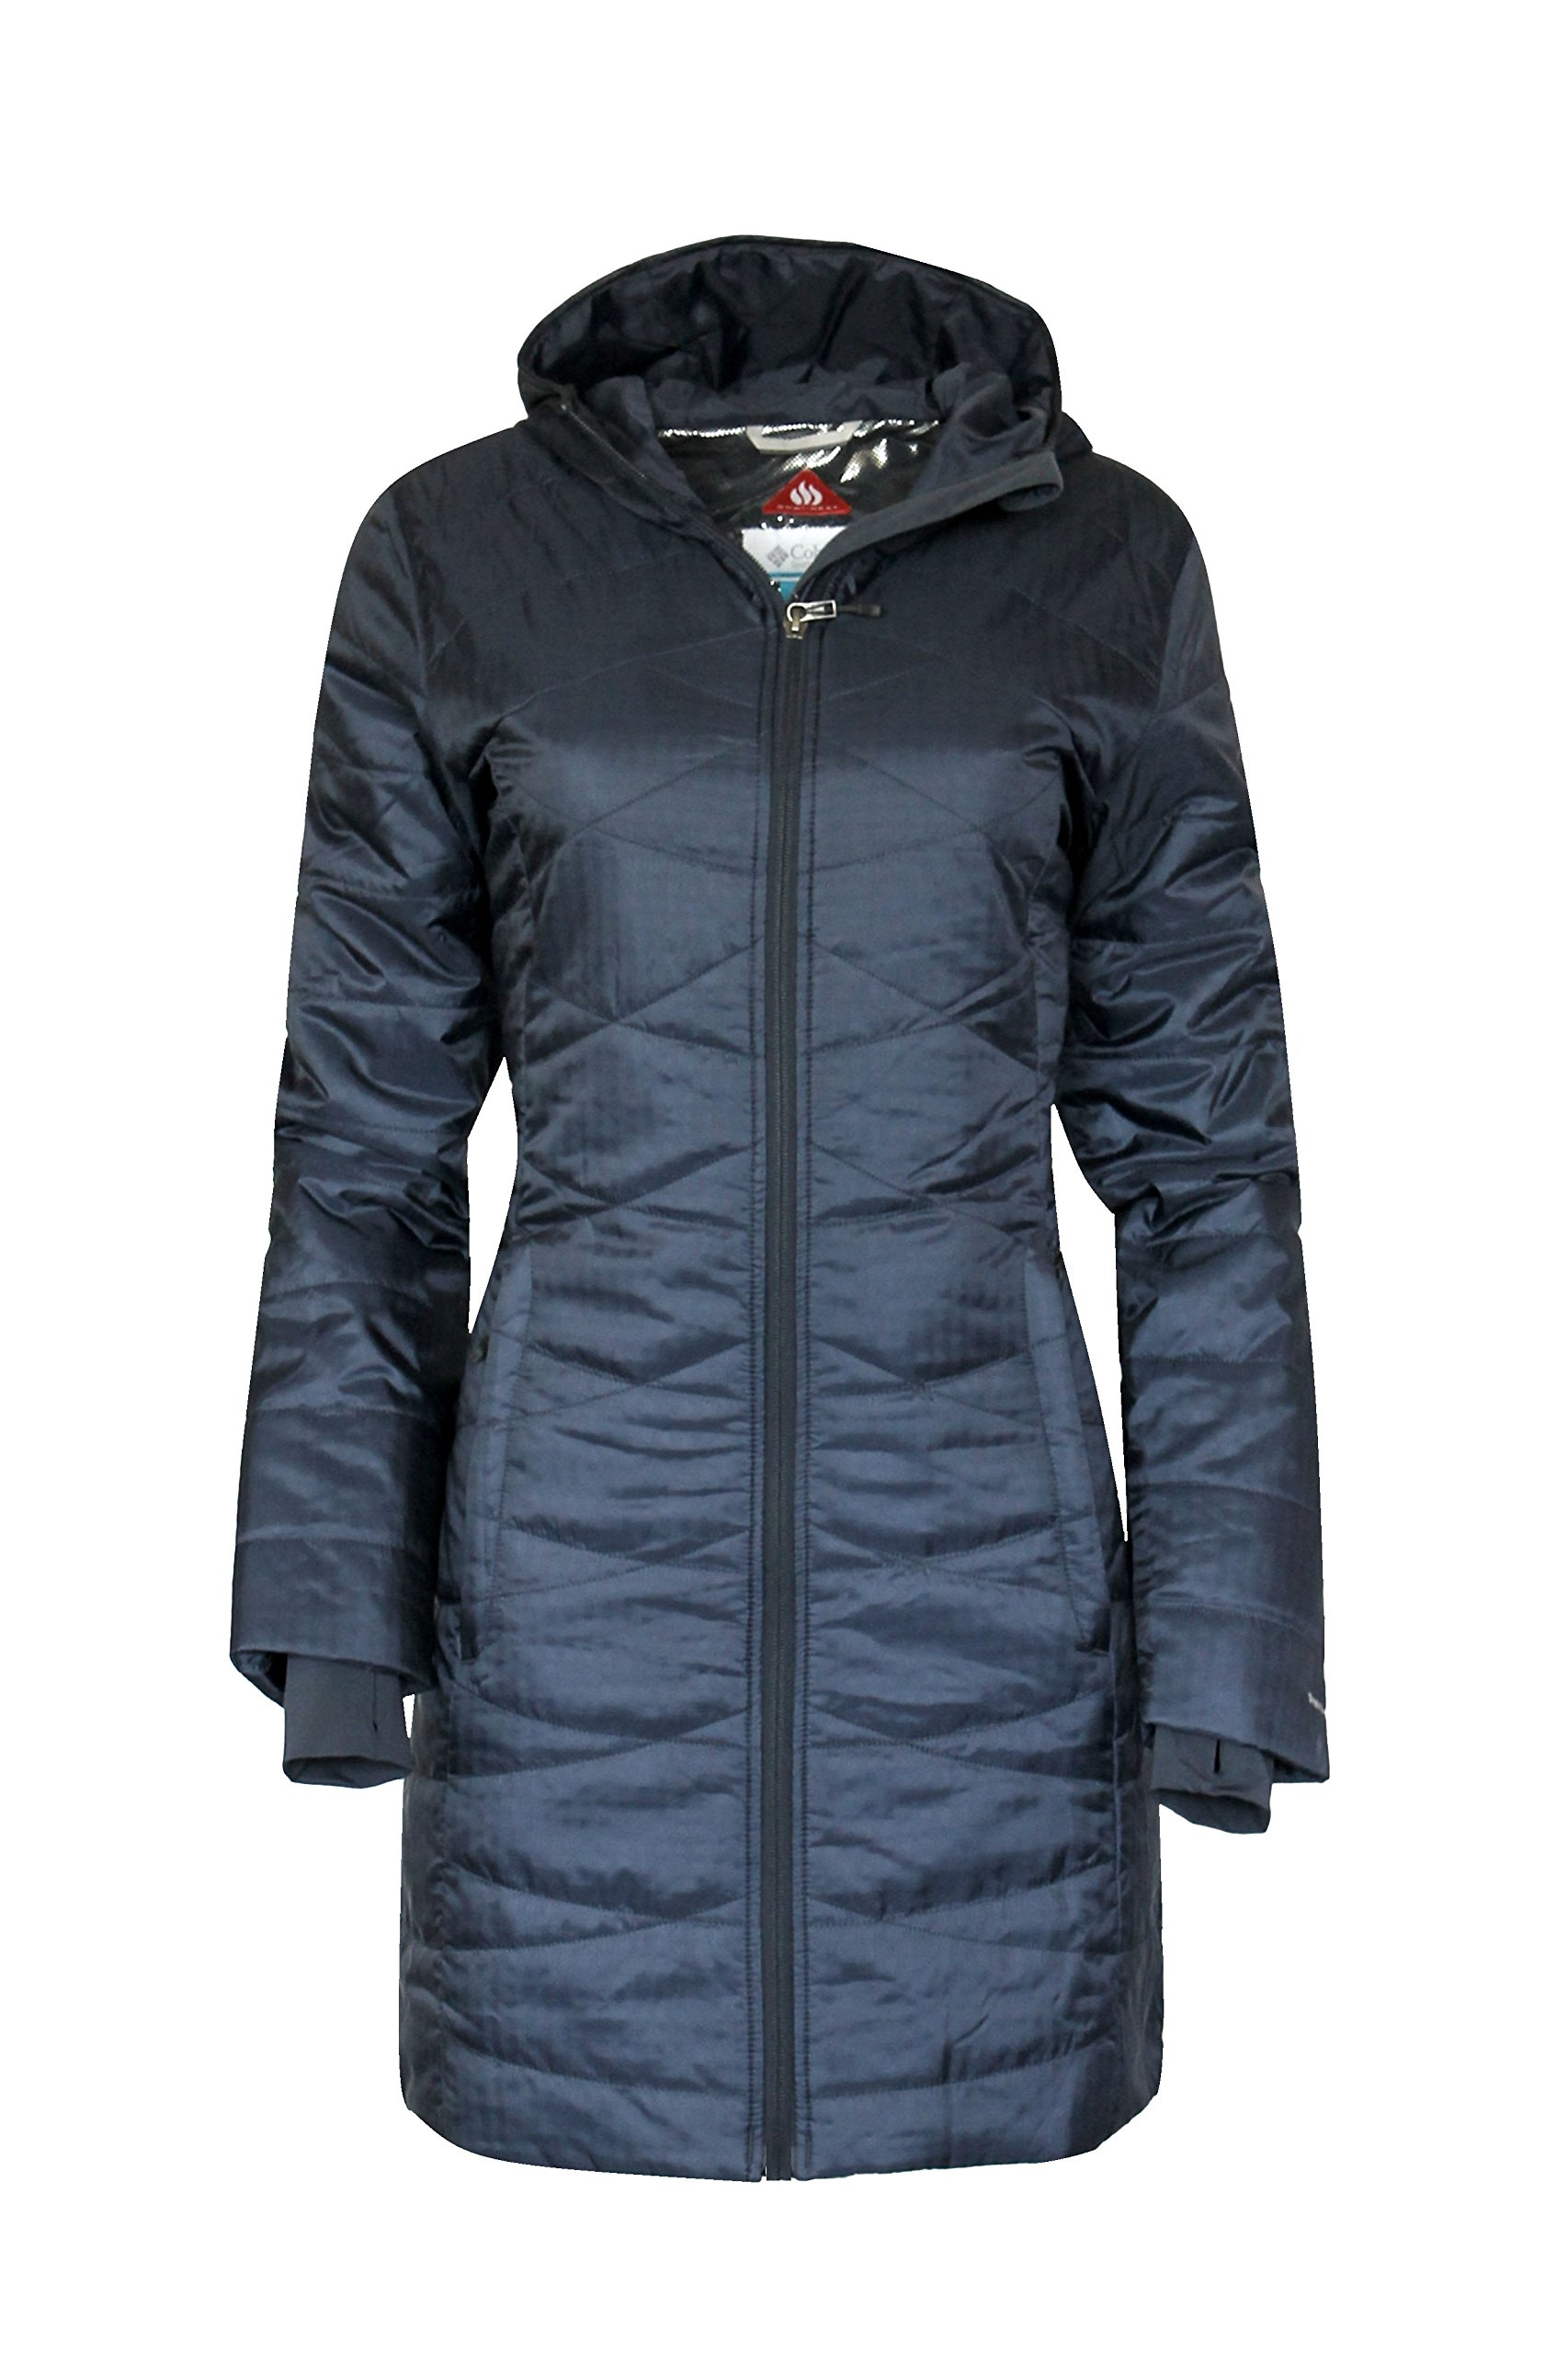 closeout canada goose jackets on sale toronto airport ...